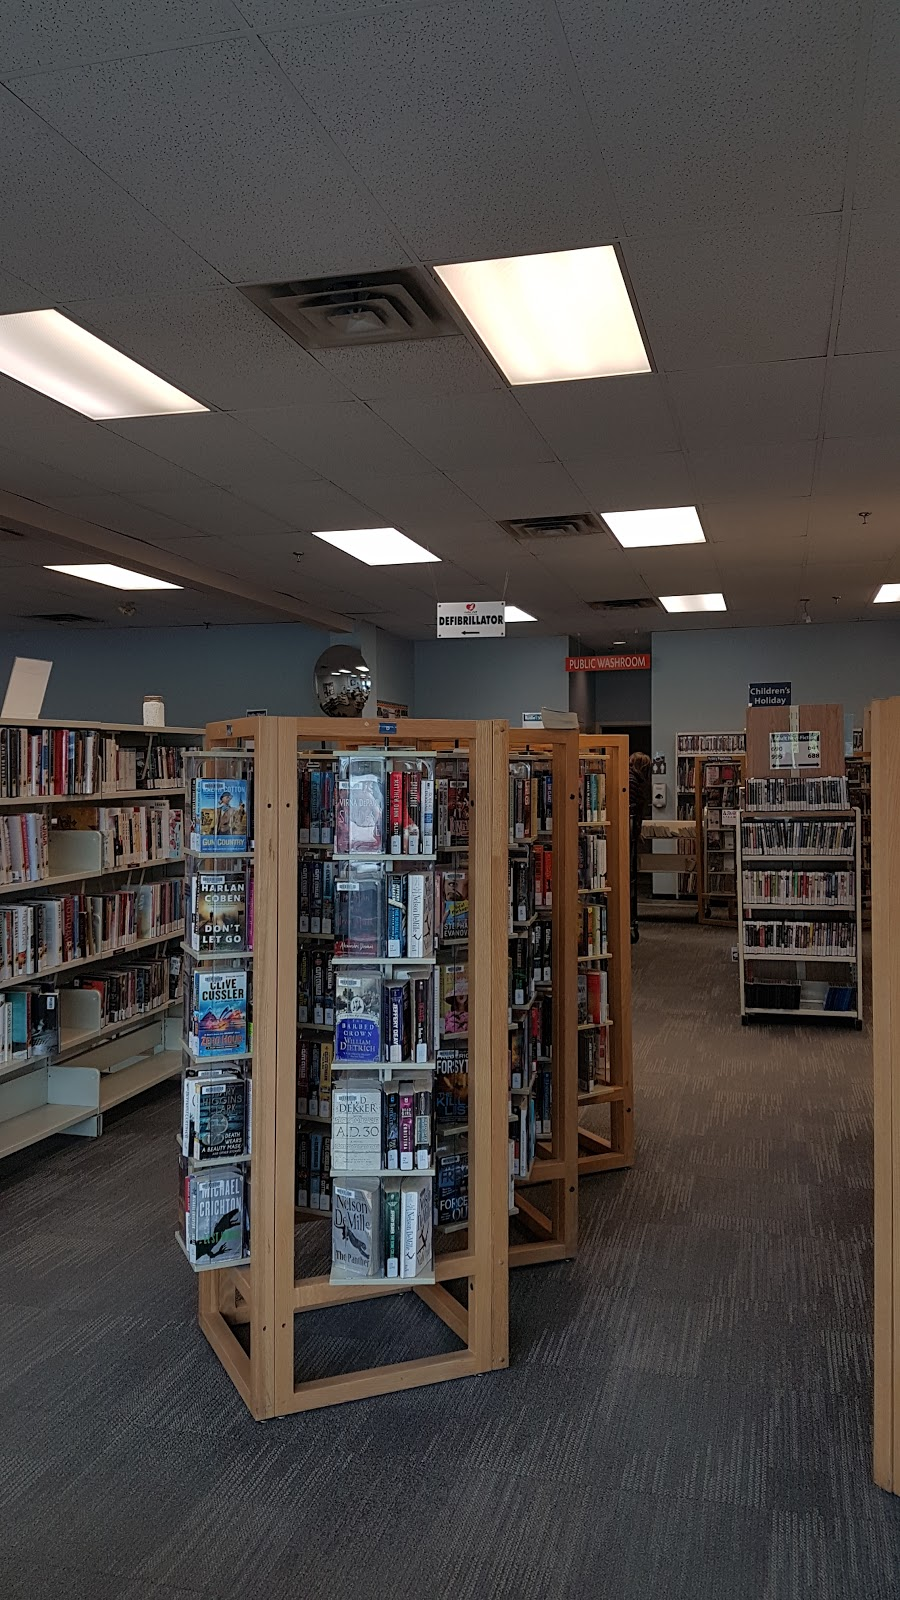 Whitby Public Library - Rossland Branch | library | 701 Rossland Rd E, Whitby, ON L1N 8Y9, Canada | 9056681886 OR +1 905-668-1886